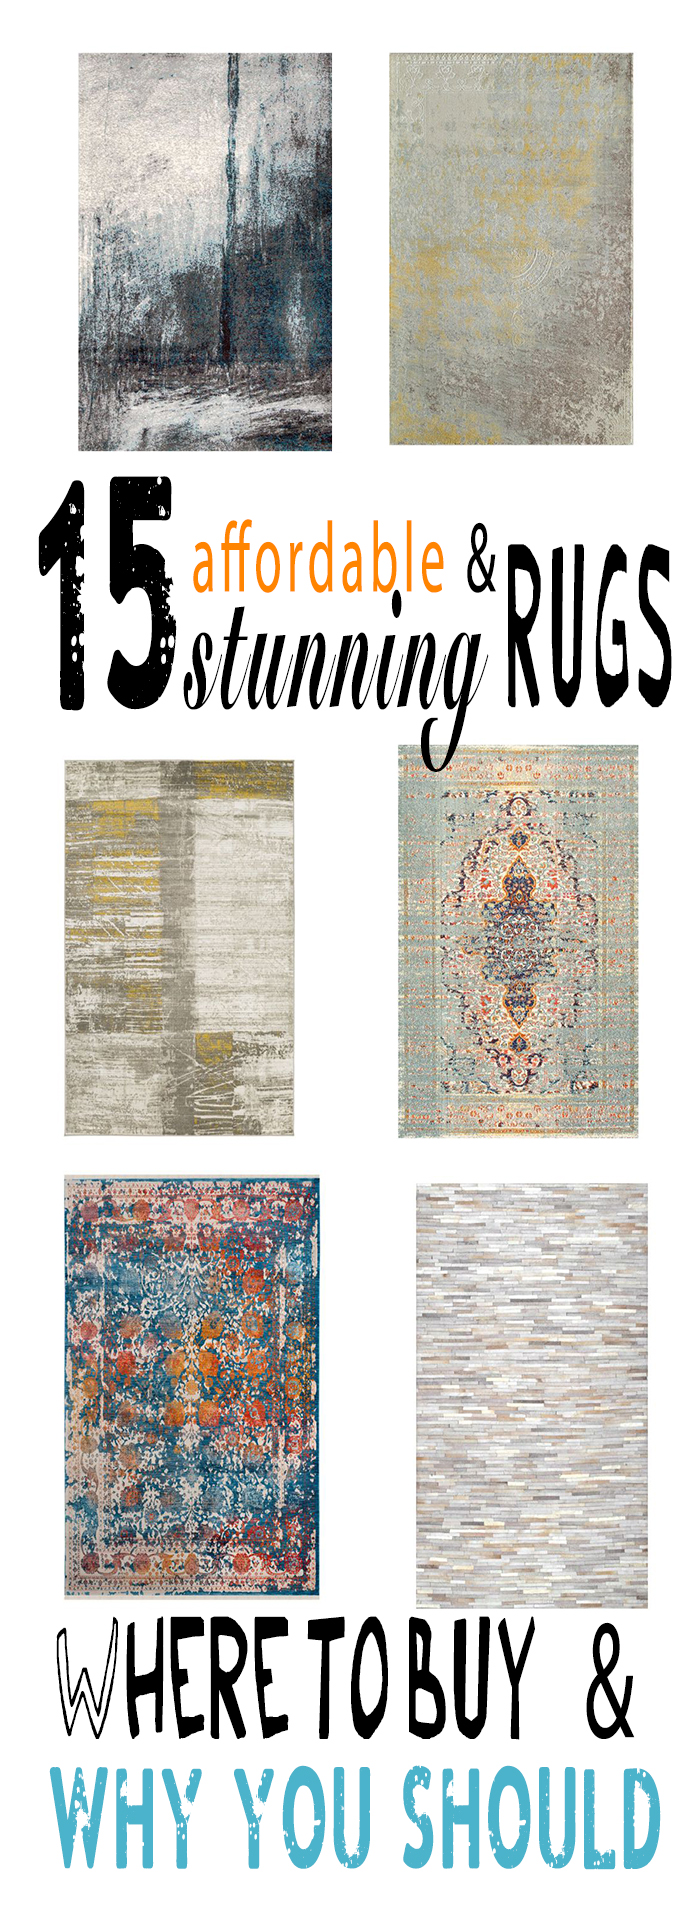 Stunning area rugs on sale | Where to buy and why you should!